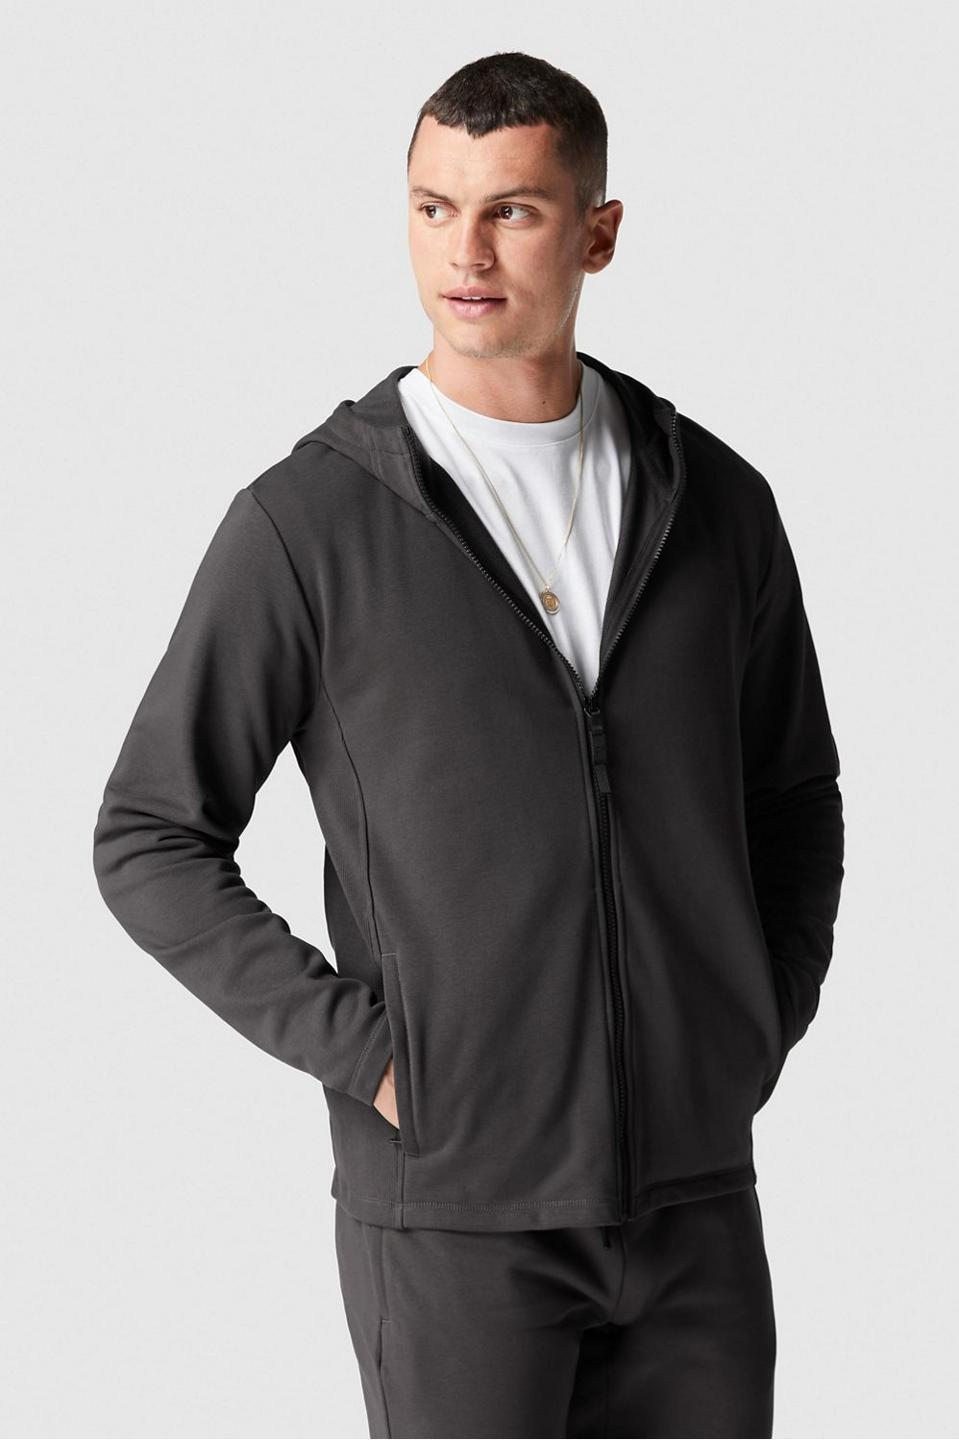 The Courtside Full Zip Hoodie features external and hidden pockets, anti-stink protection, sweat wicking fabric and zip pockets to elevate your workout look